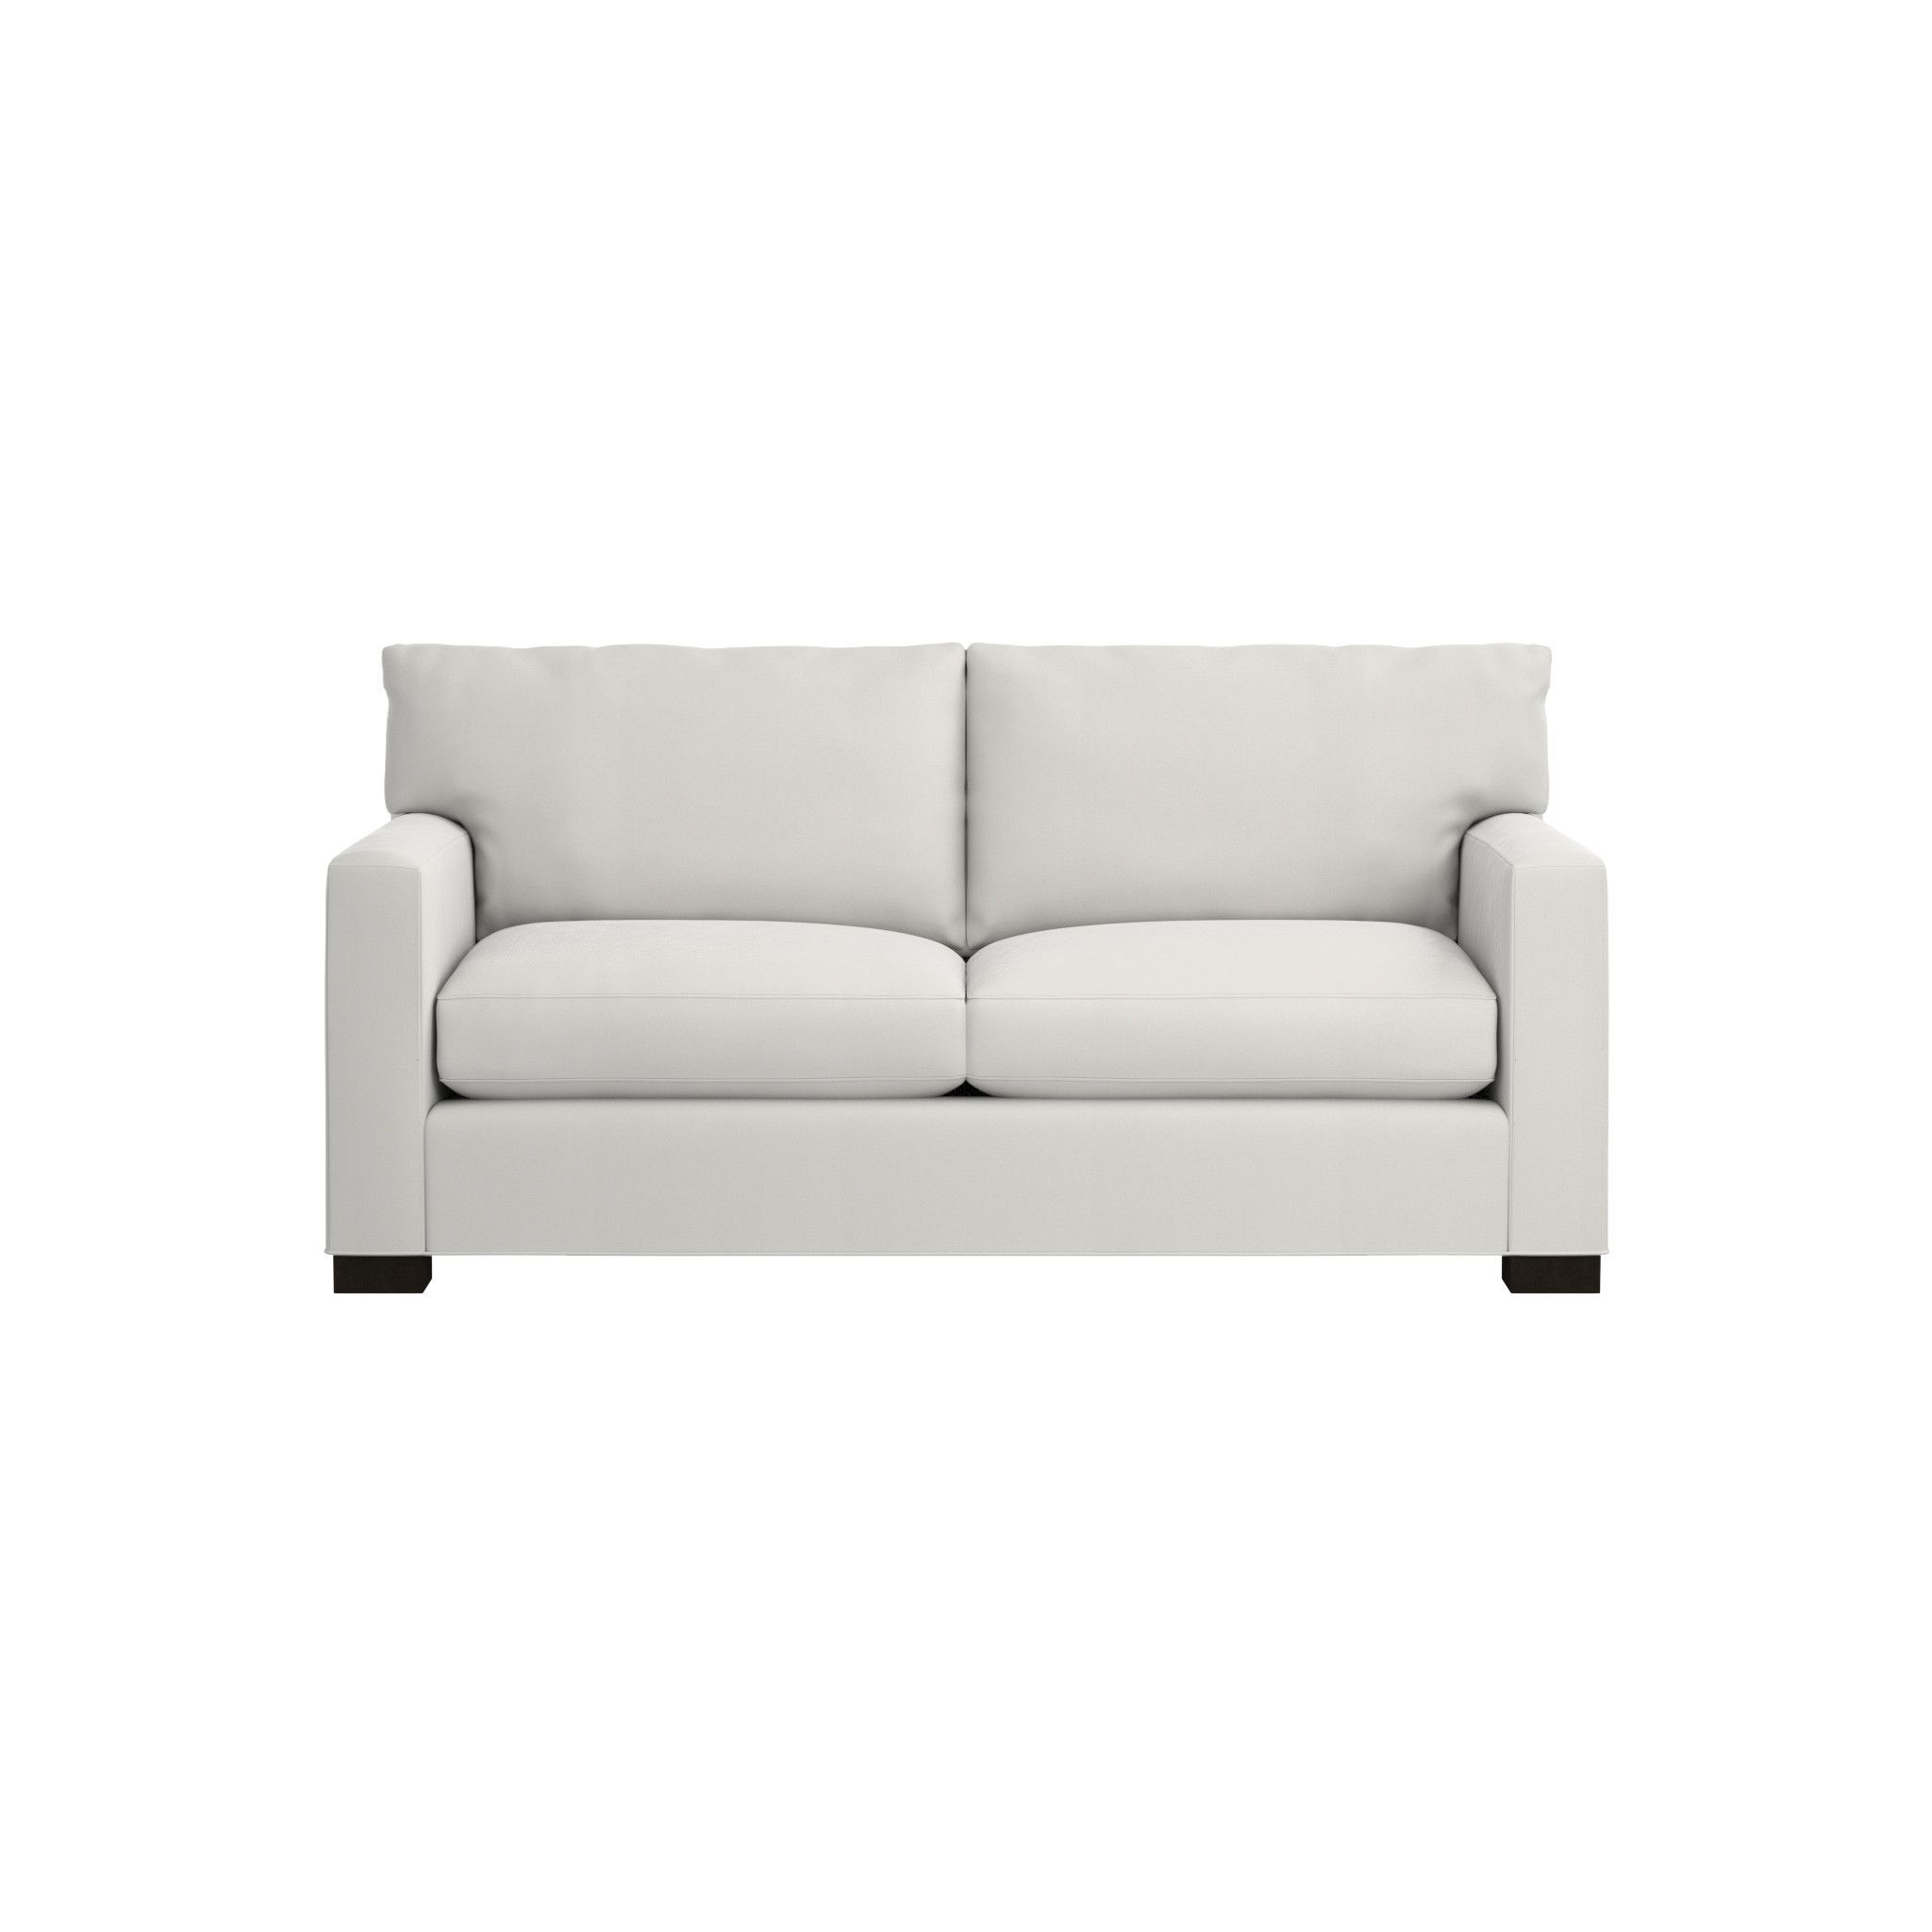 size come mid design memory inch sealy sofas ac on uncategorized sleeping century foam shaped l stunning with topper mattresses hide price for ikea inflatable twin sofa ideas mattress sleeper out imgid a inspiration pull bed flexsteel reviews modern couch of and queen full hideabeds